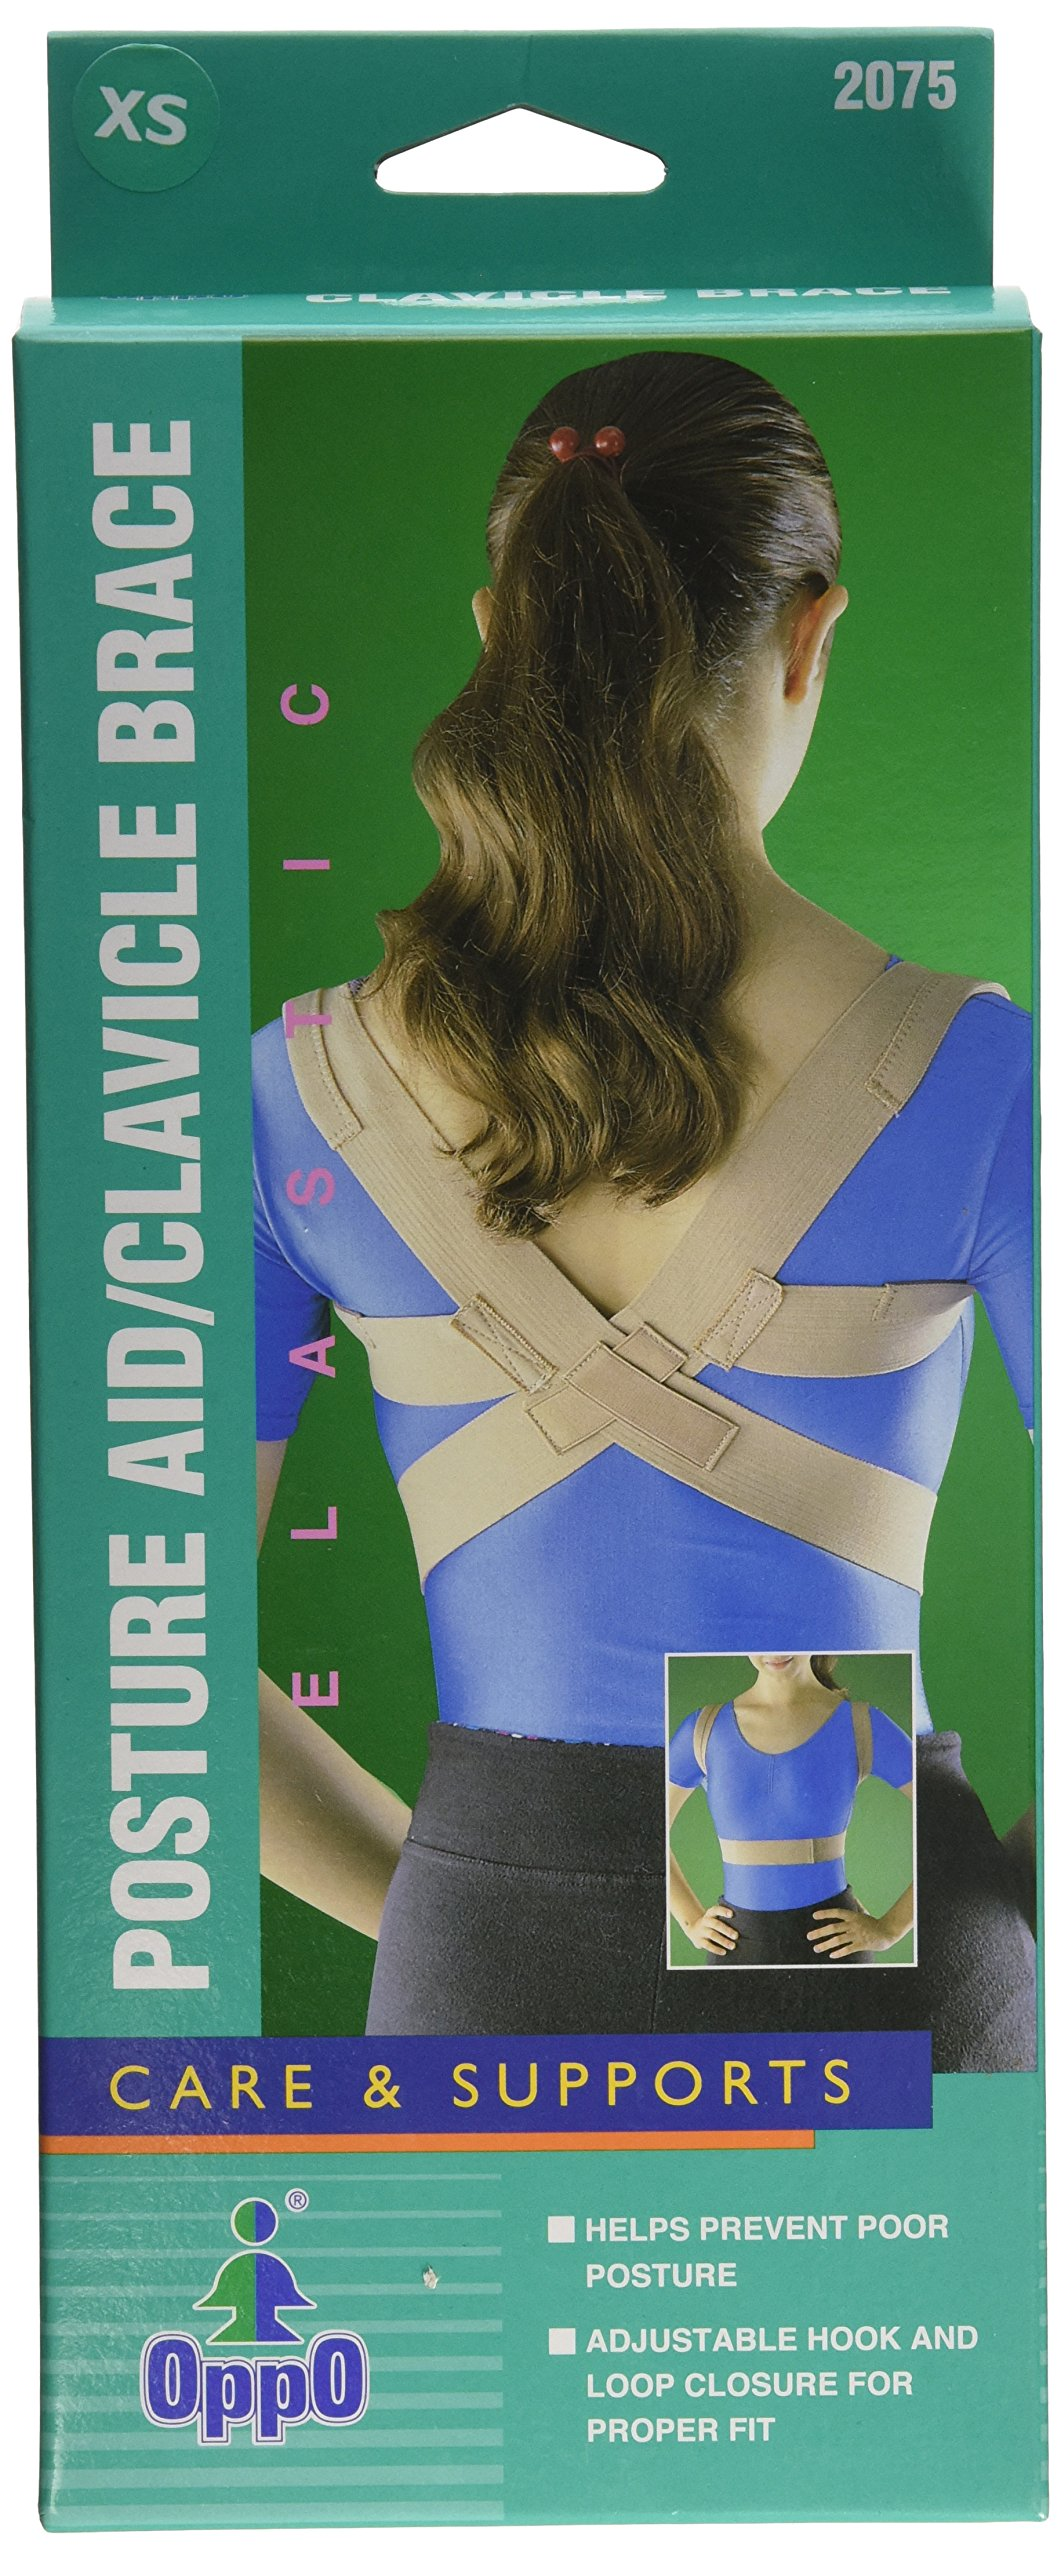 Amazon.com: The 2 in 1 Posture Brace | Posturific Brace.com ...